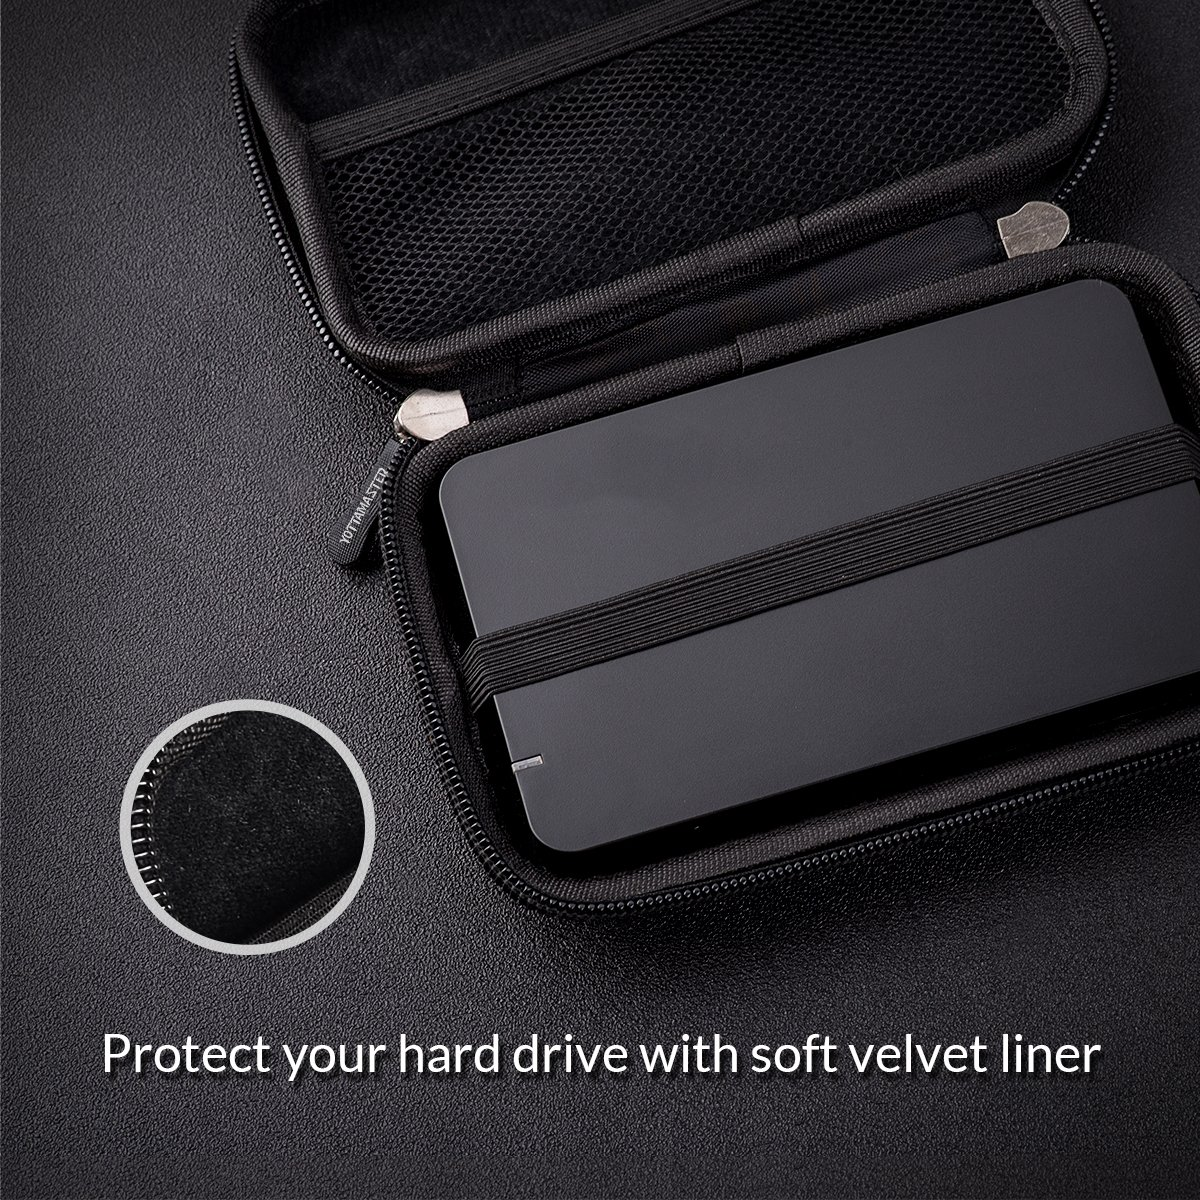 Yottamaster 2.5 Inch EVA Hard Drive Protection Bag HDD Protective Case Waterproof Scratchproof